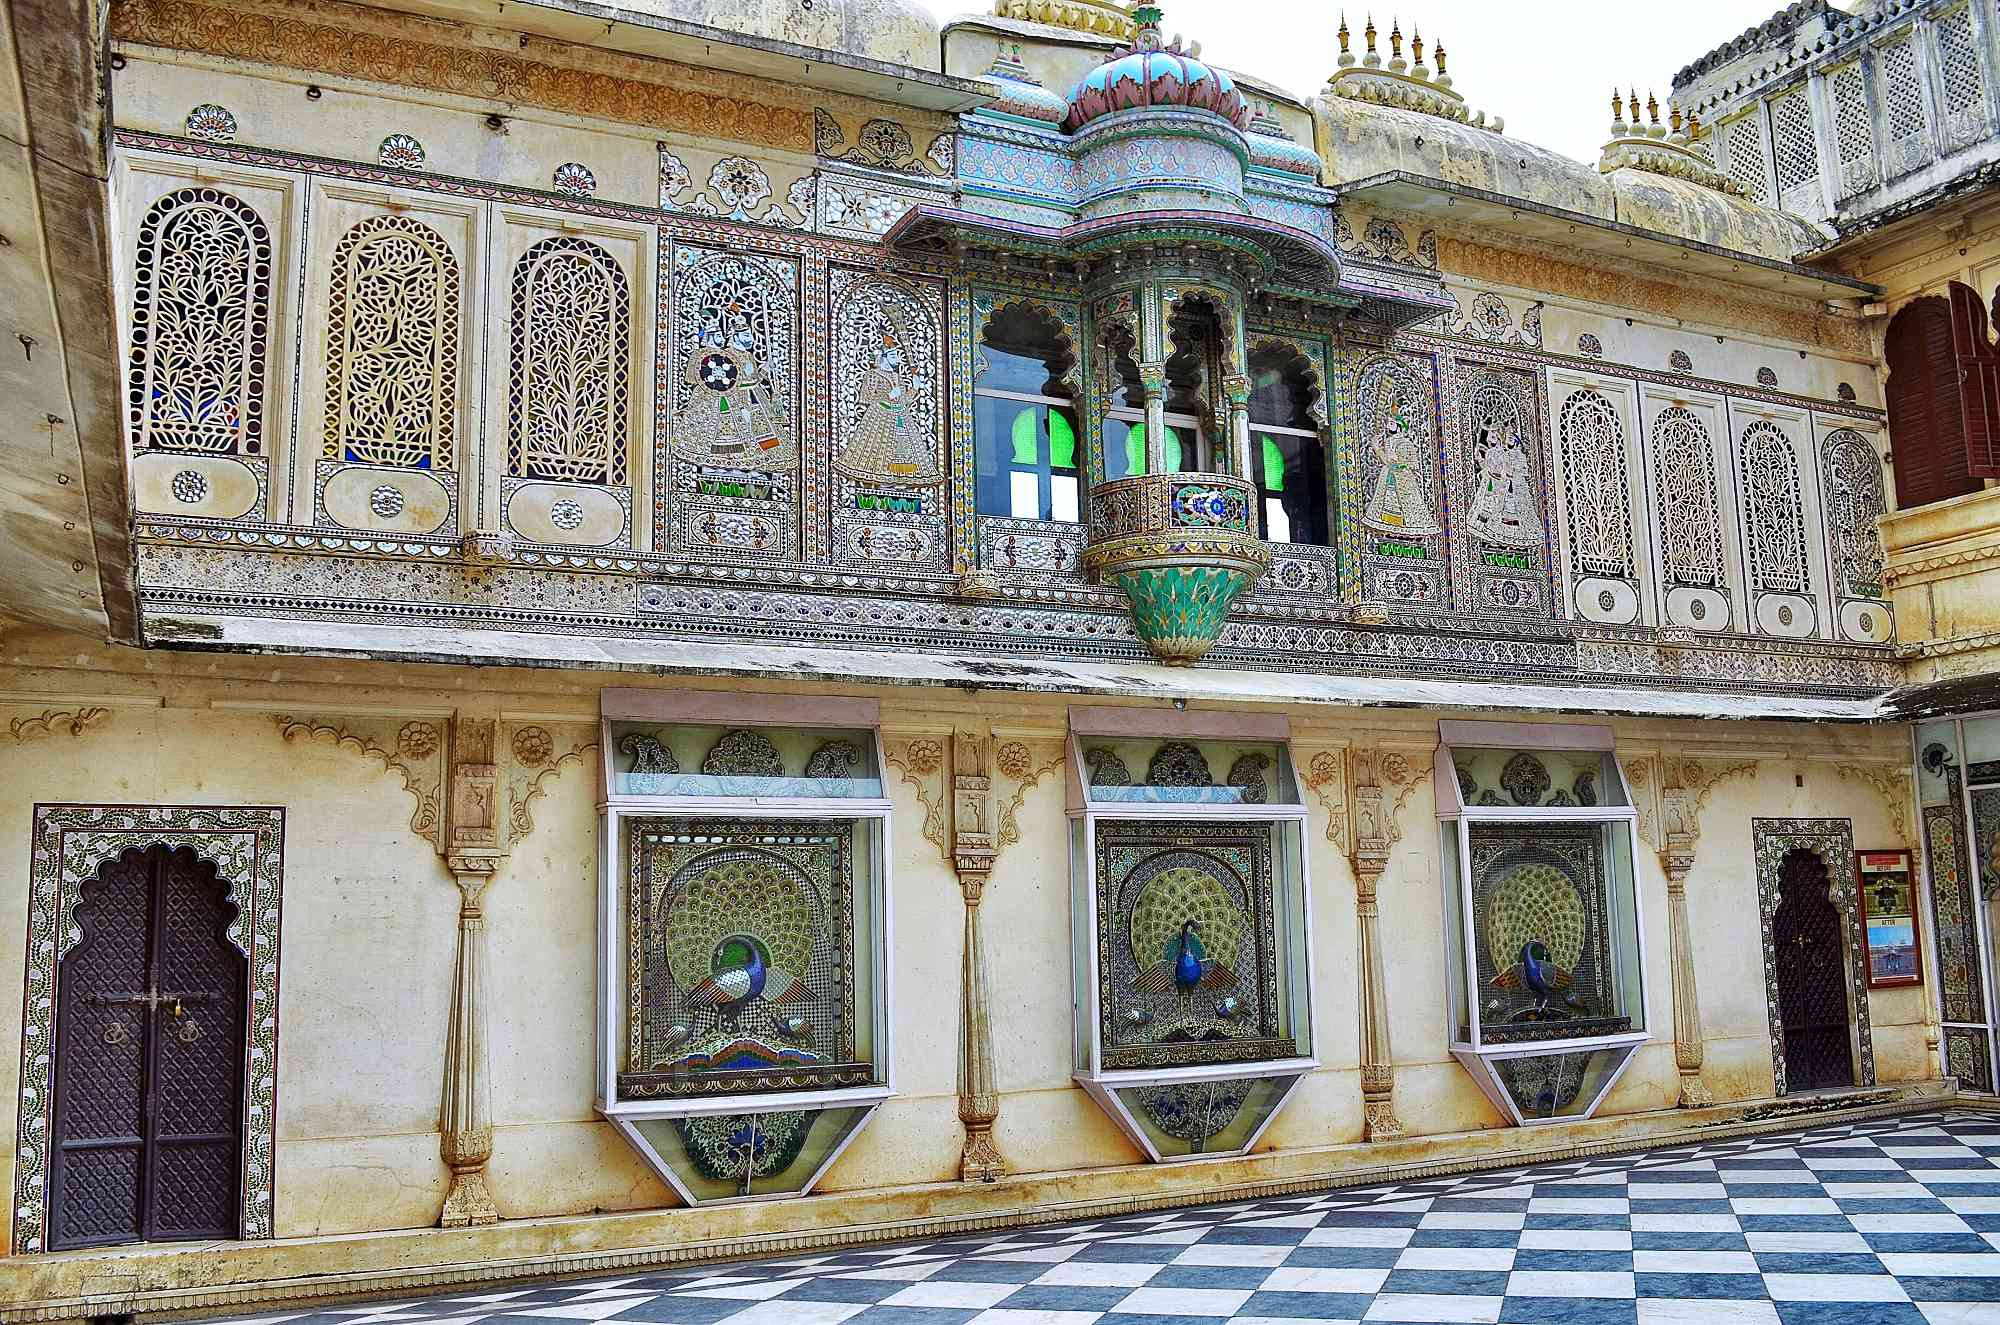 Intricate metal window decorations on Udaipur's City Palace